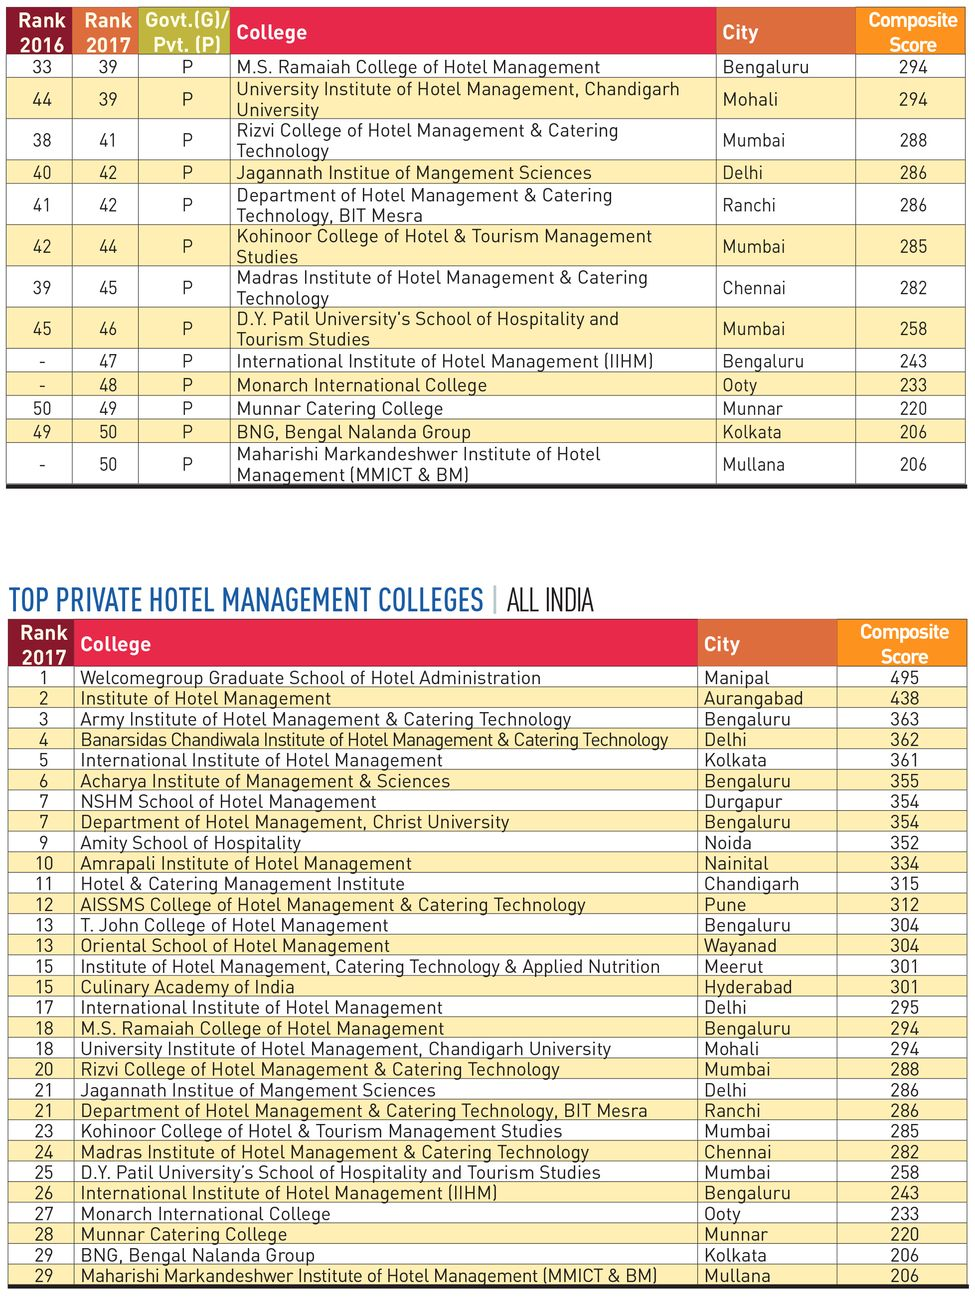 116-PRIVATE-HOTEL-MANAGEMENT-COLLEGES